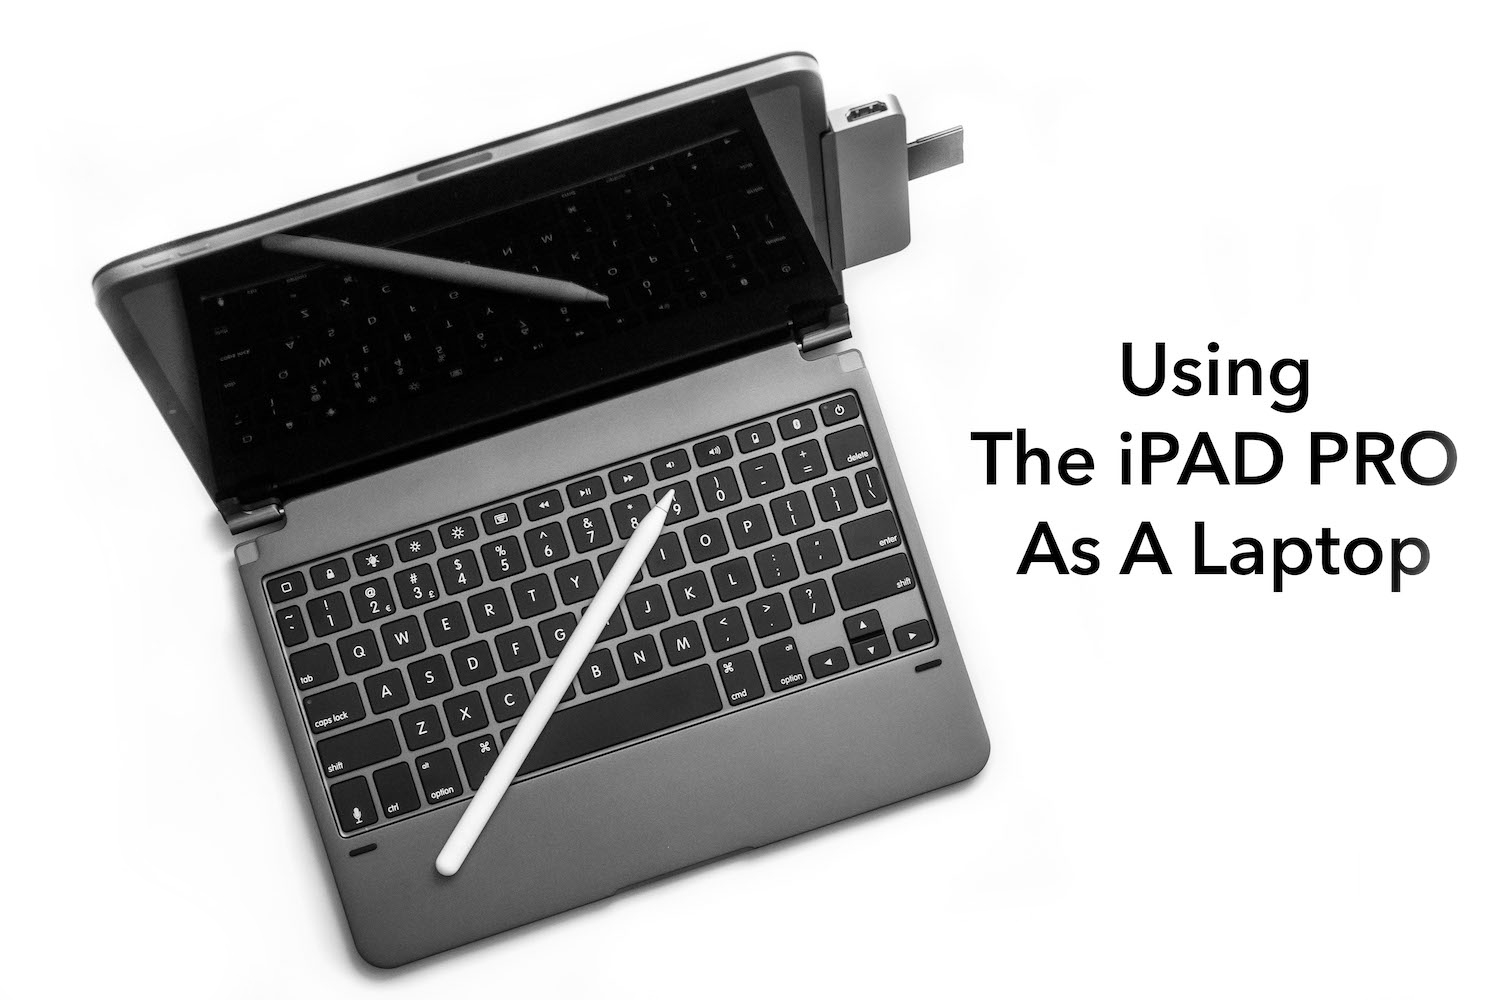 Using The iPad Pro As A Laptop